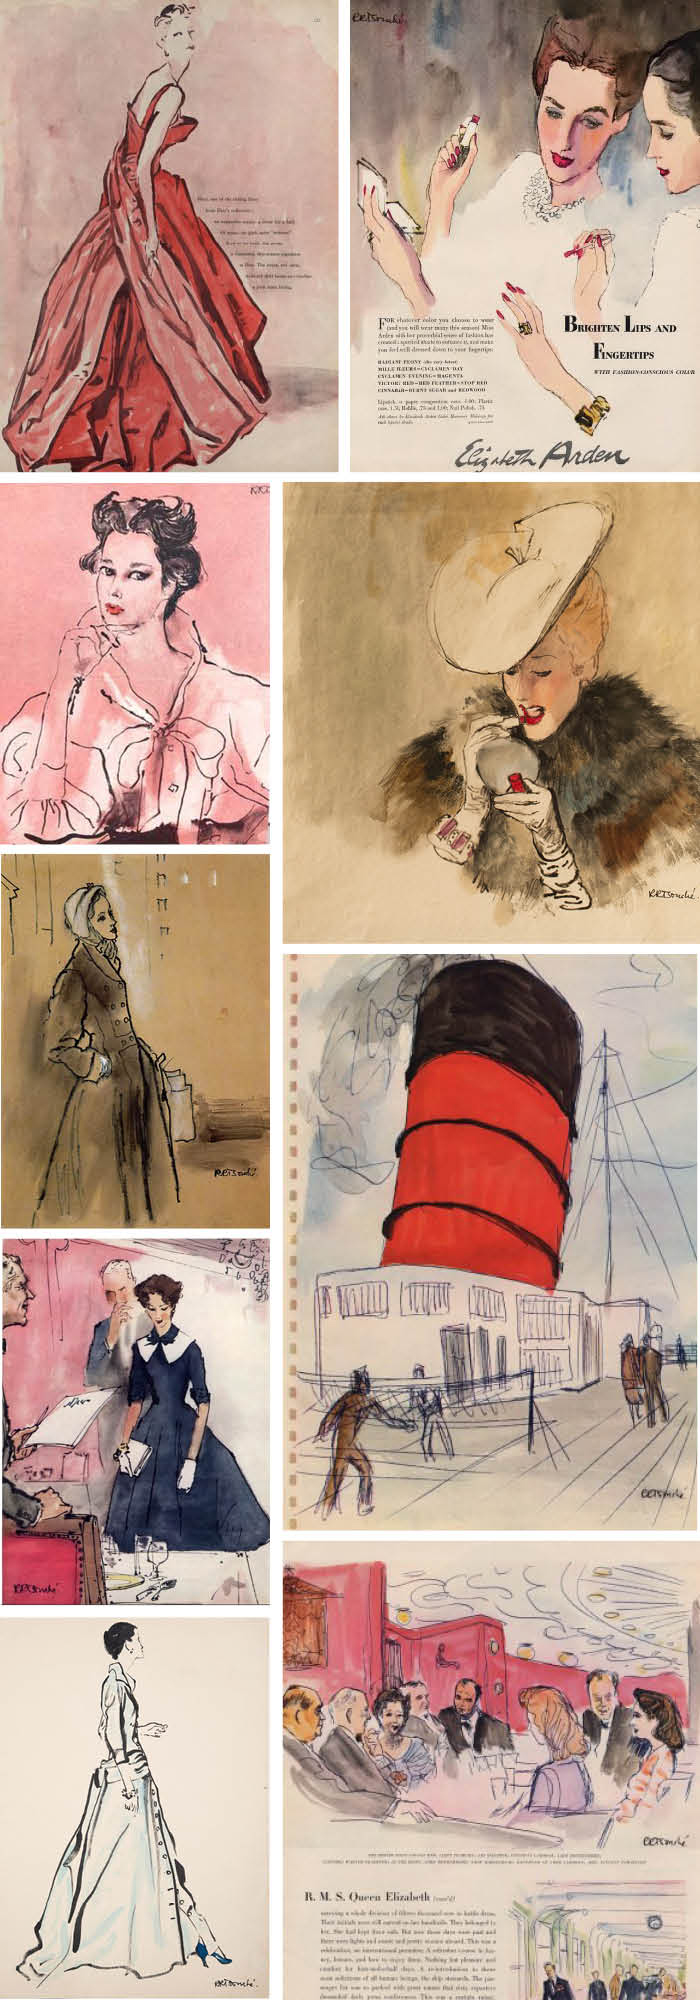 René Robert Bouché fashion illustrations